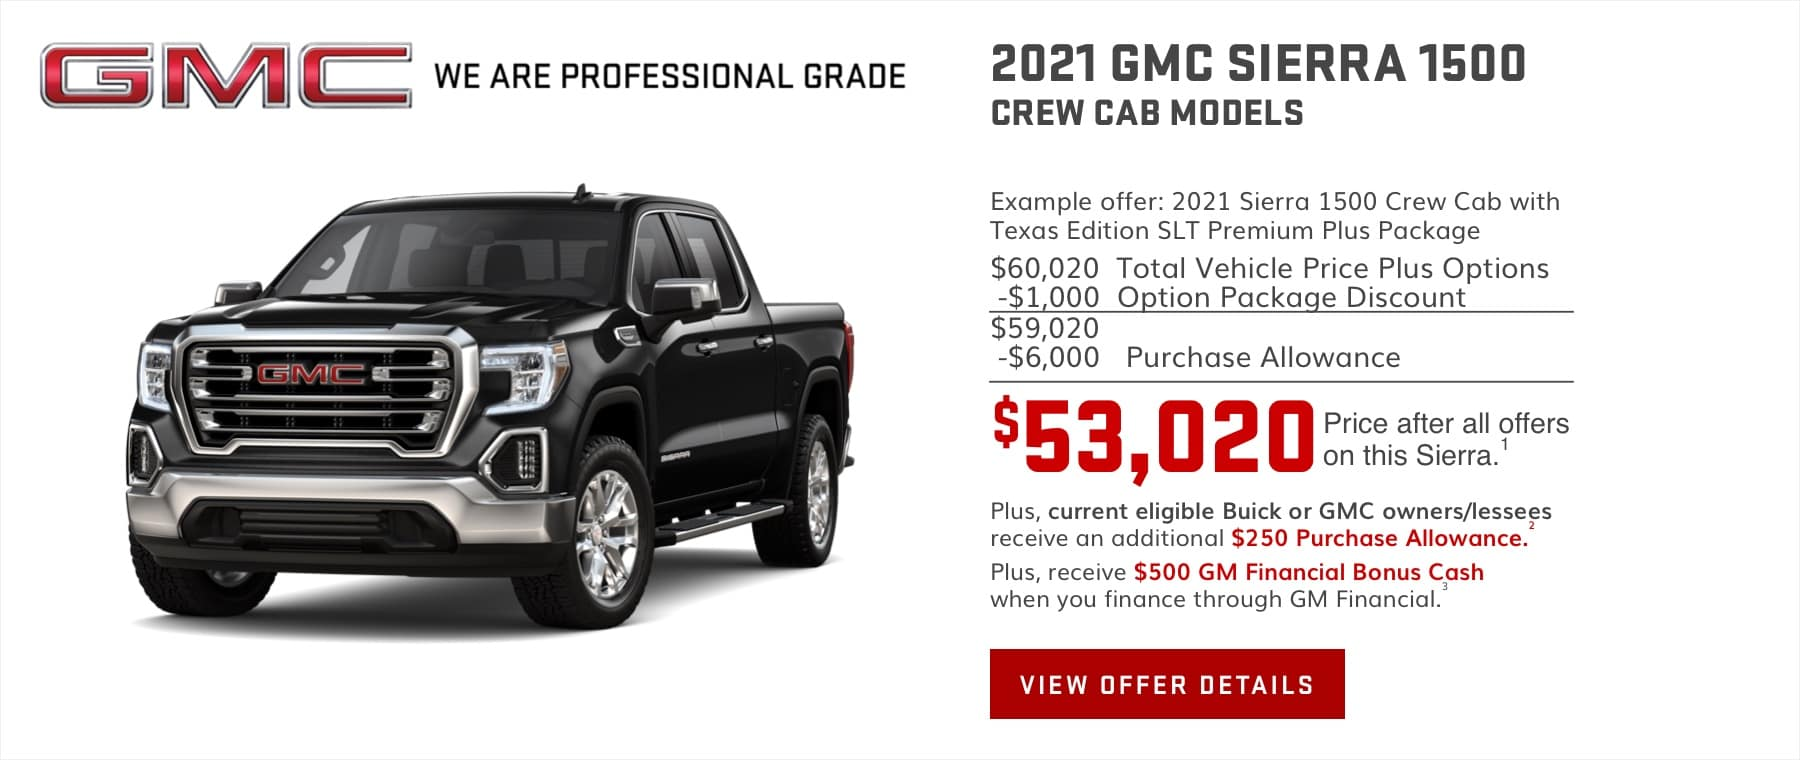 $71,365 Price after all offers on this Sierra.1 Plus, current eligible Buick or GMC owners/lessees receive an additional $250 Purchase Allowance.2 Plus, receive $500 GM Financial Bonus Cash when you finance through GM Financial.3